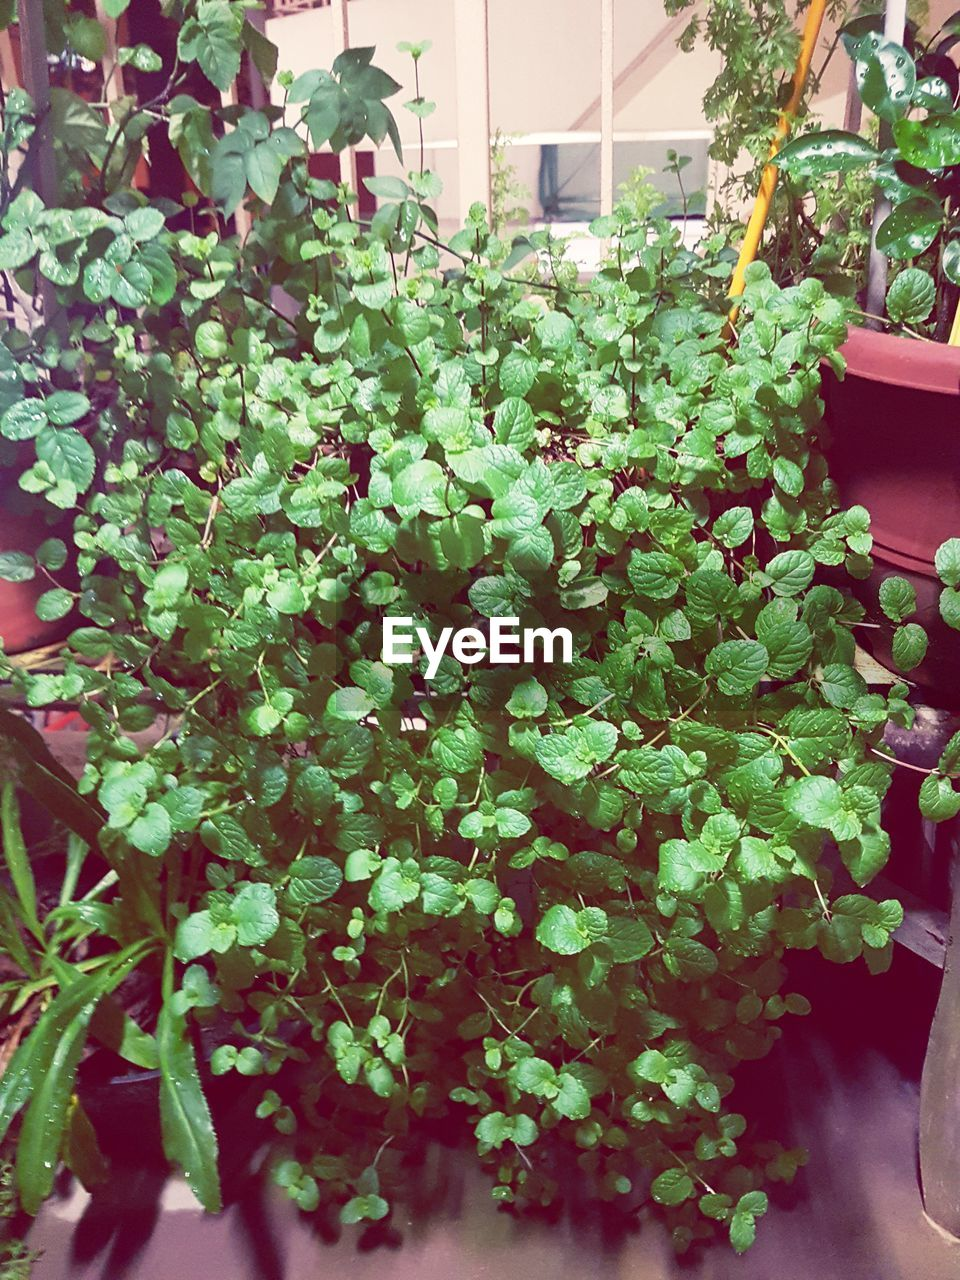 growth, plant, plant part, leaf, green color, beauty in nature, potted plant, nature, no people, day, freshness, outdoors, botany, vulnerability, abundance, close-up, fragility, high angle view, flower, architecture, flower pot, plant nursery, houseplant, gardening